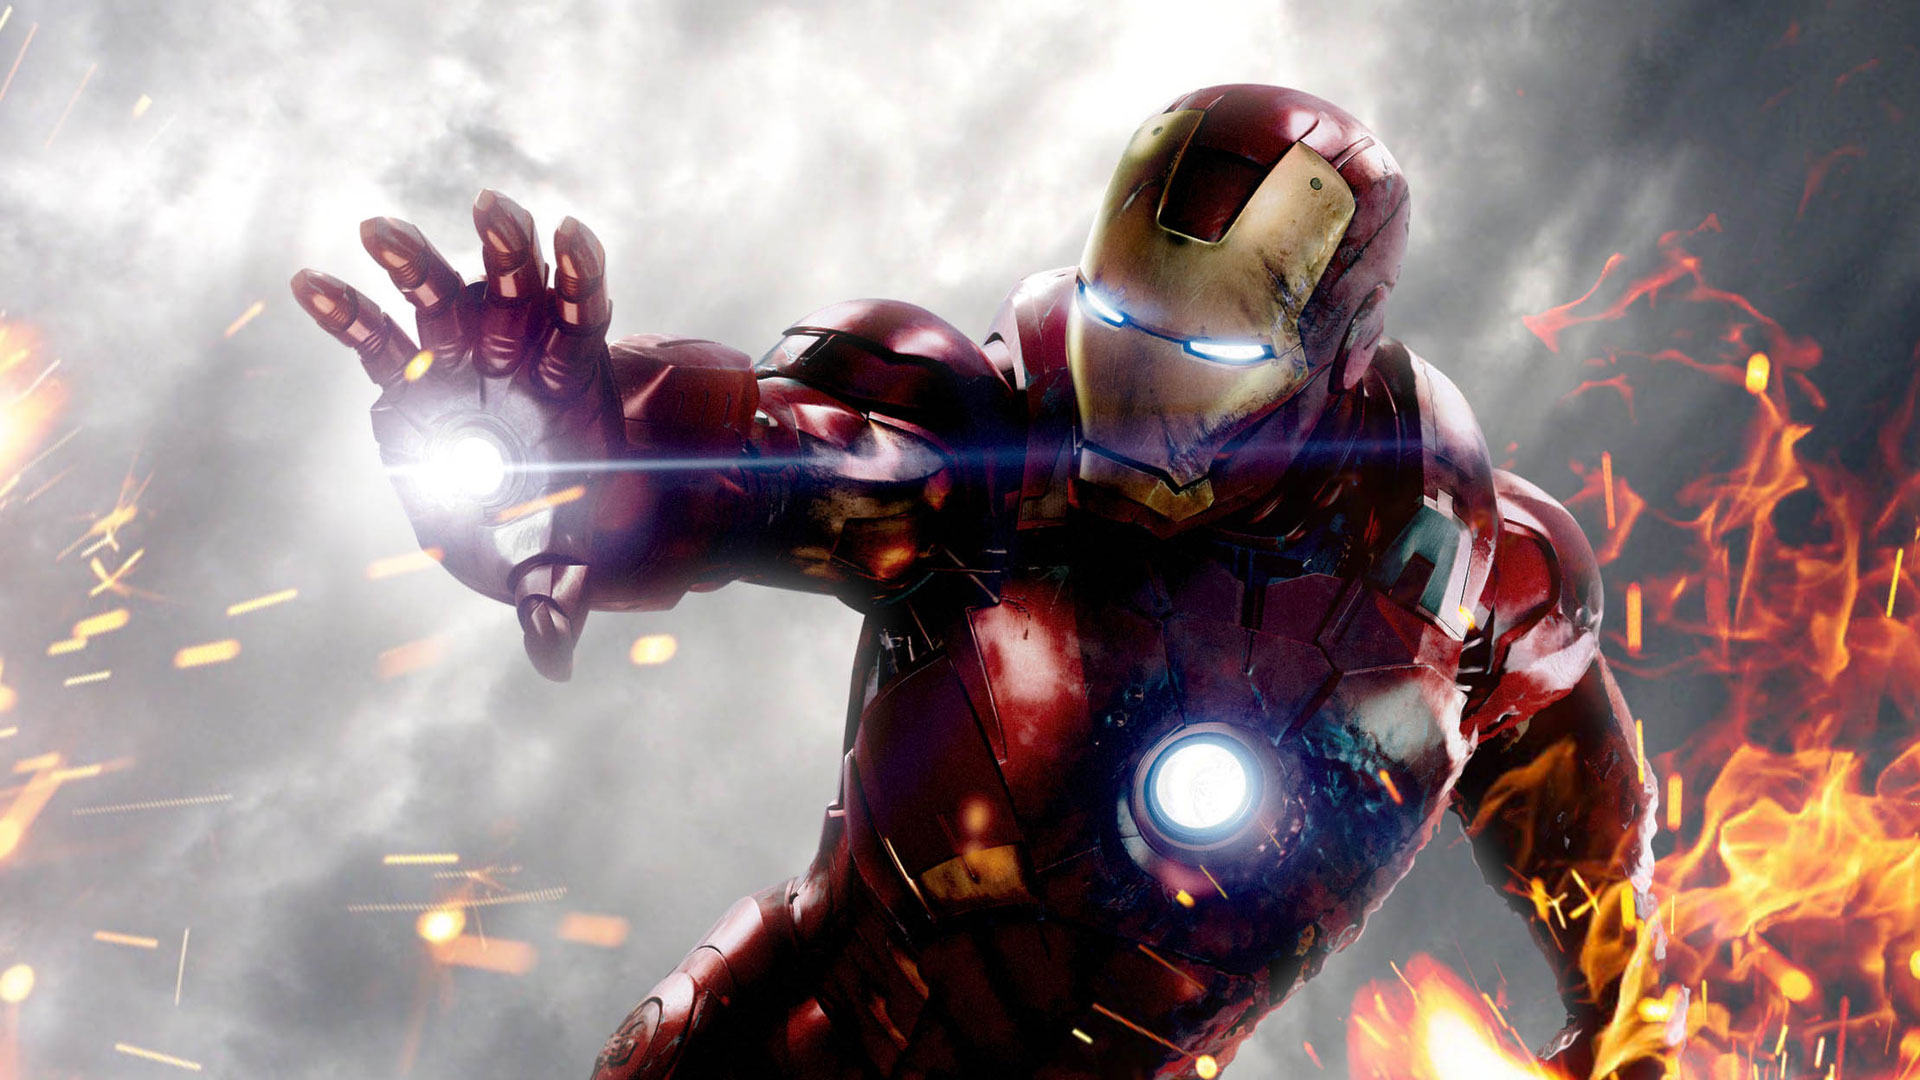 35 Iron Man Hd Wallpapers For Desktop: Iron Man Wallpapers HD